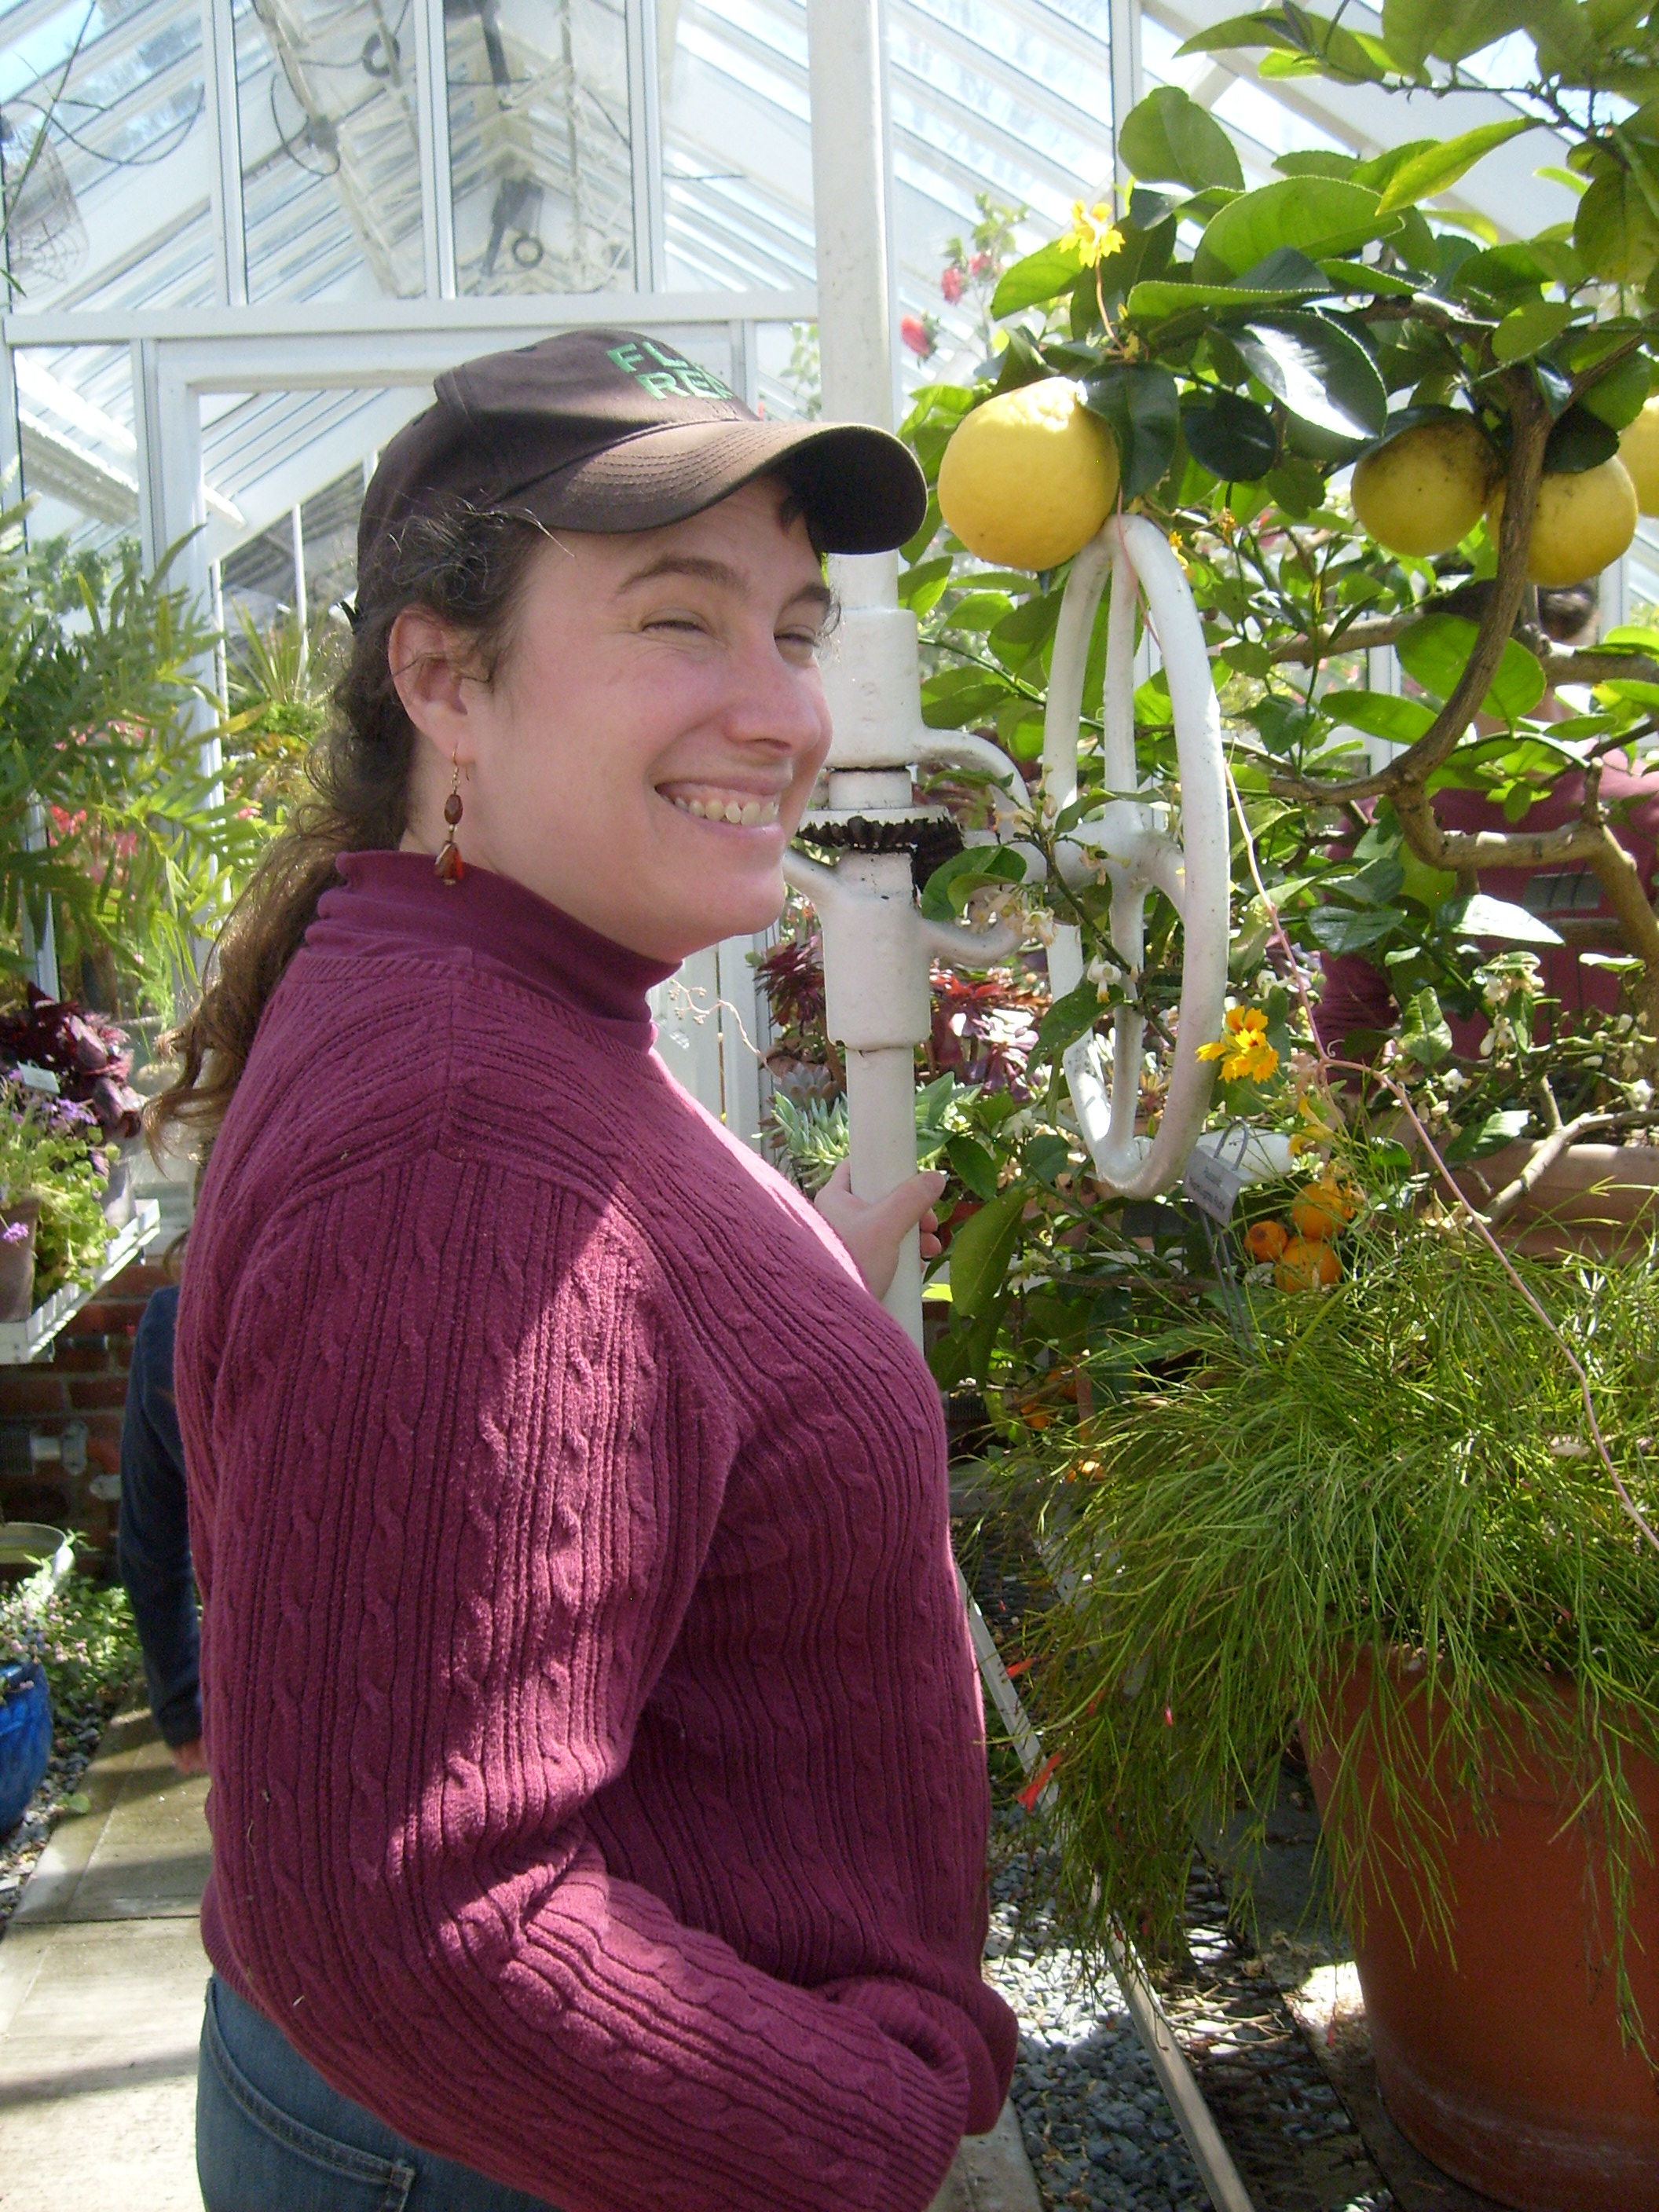 Me in the greenhouse at Blythwold by the American Wonder Lemons